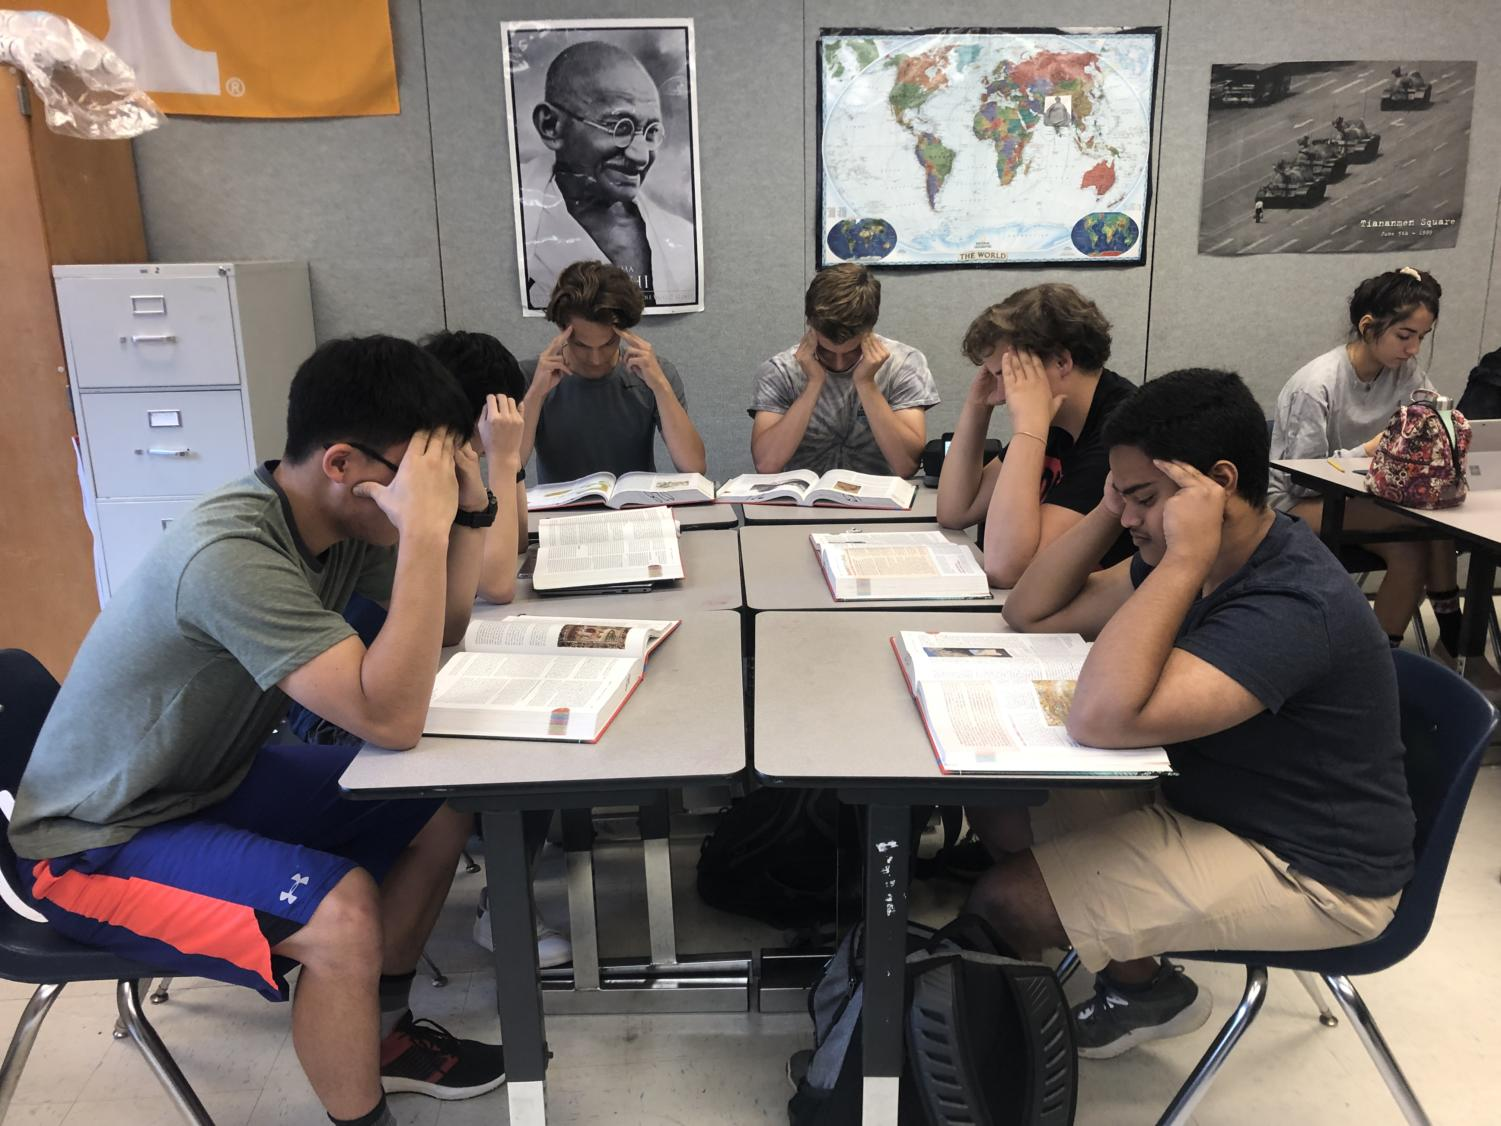 Students struggle with studying for exams. The AP World exam is especially stressful for many sophomores as it is the first AP exam for most students. Photo by Dua Mobin